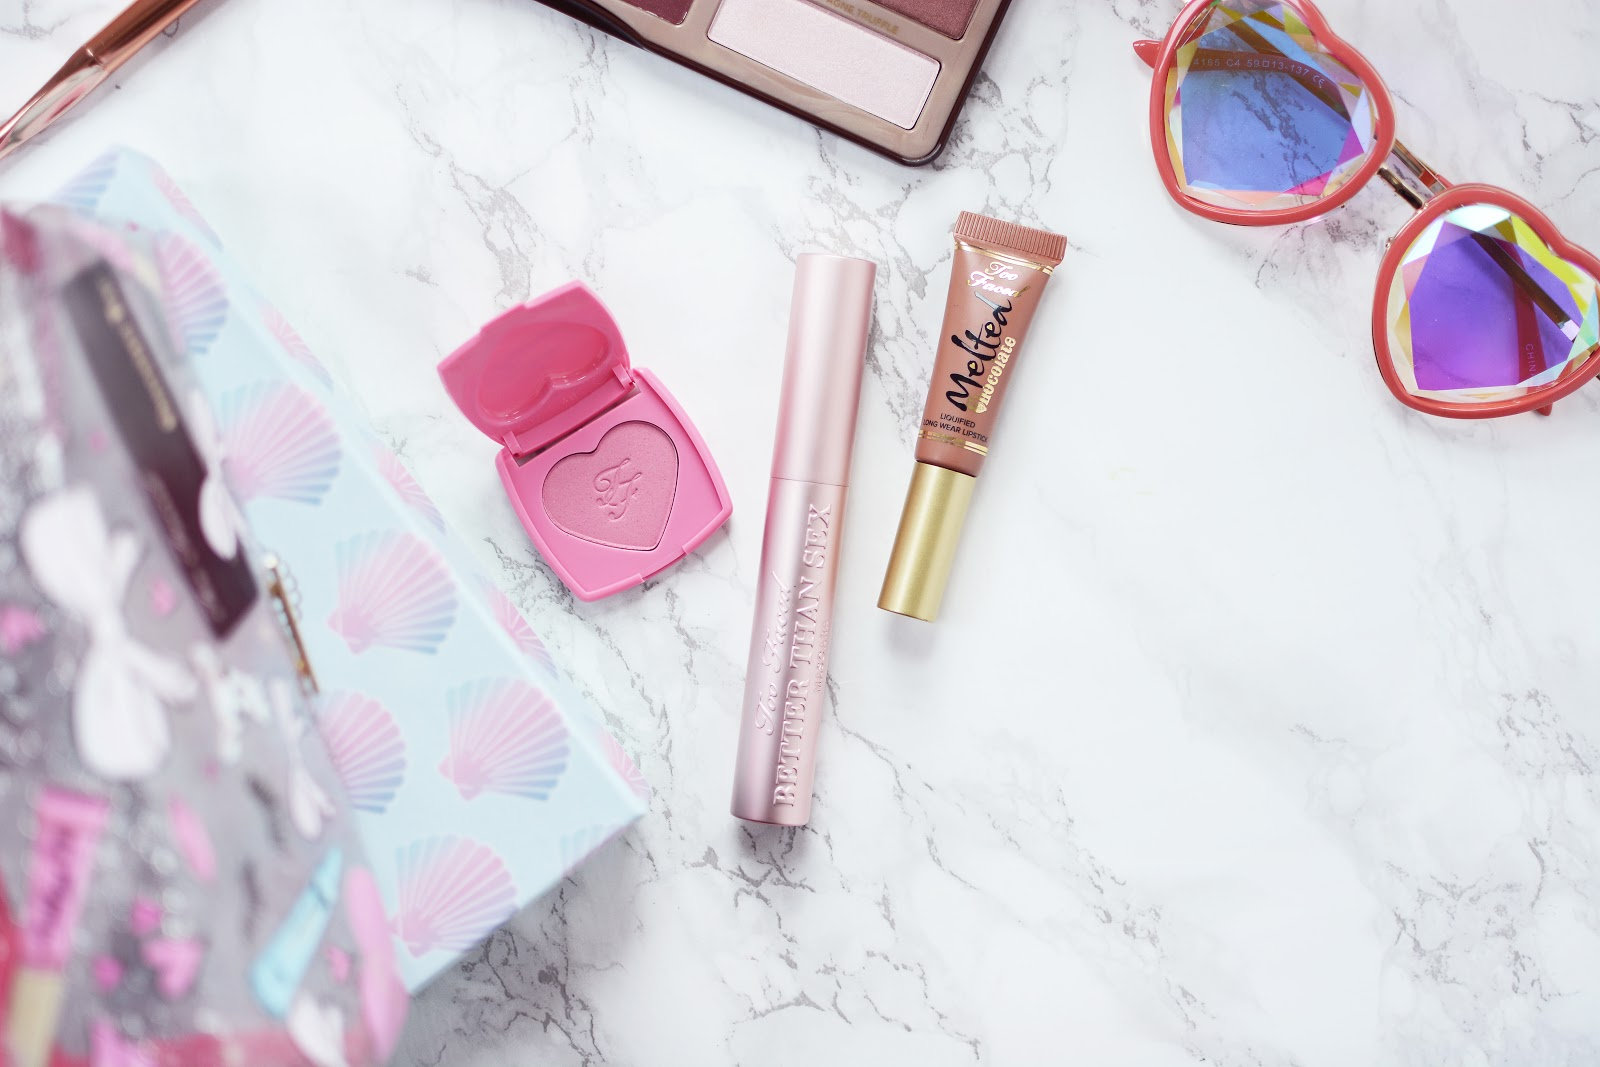 too faced make up, too faced and skinnydip london collaboration gift set